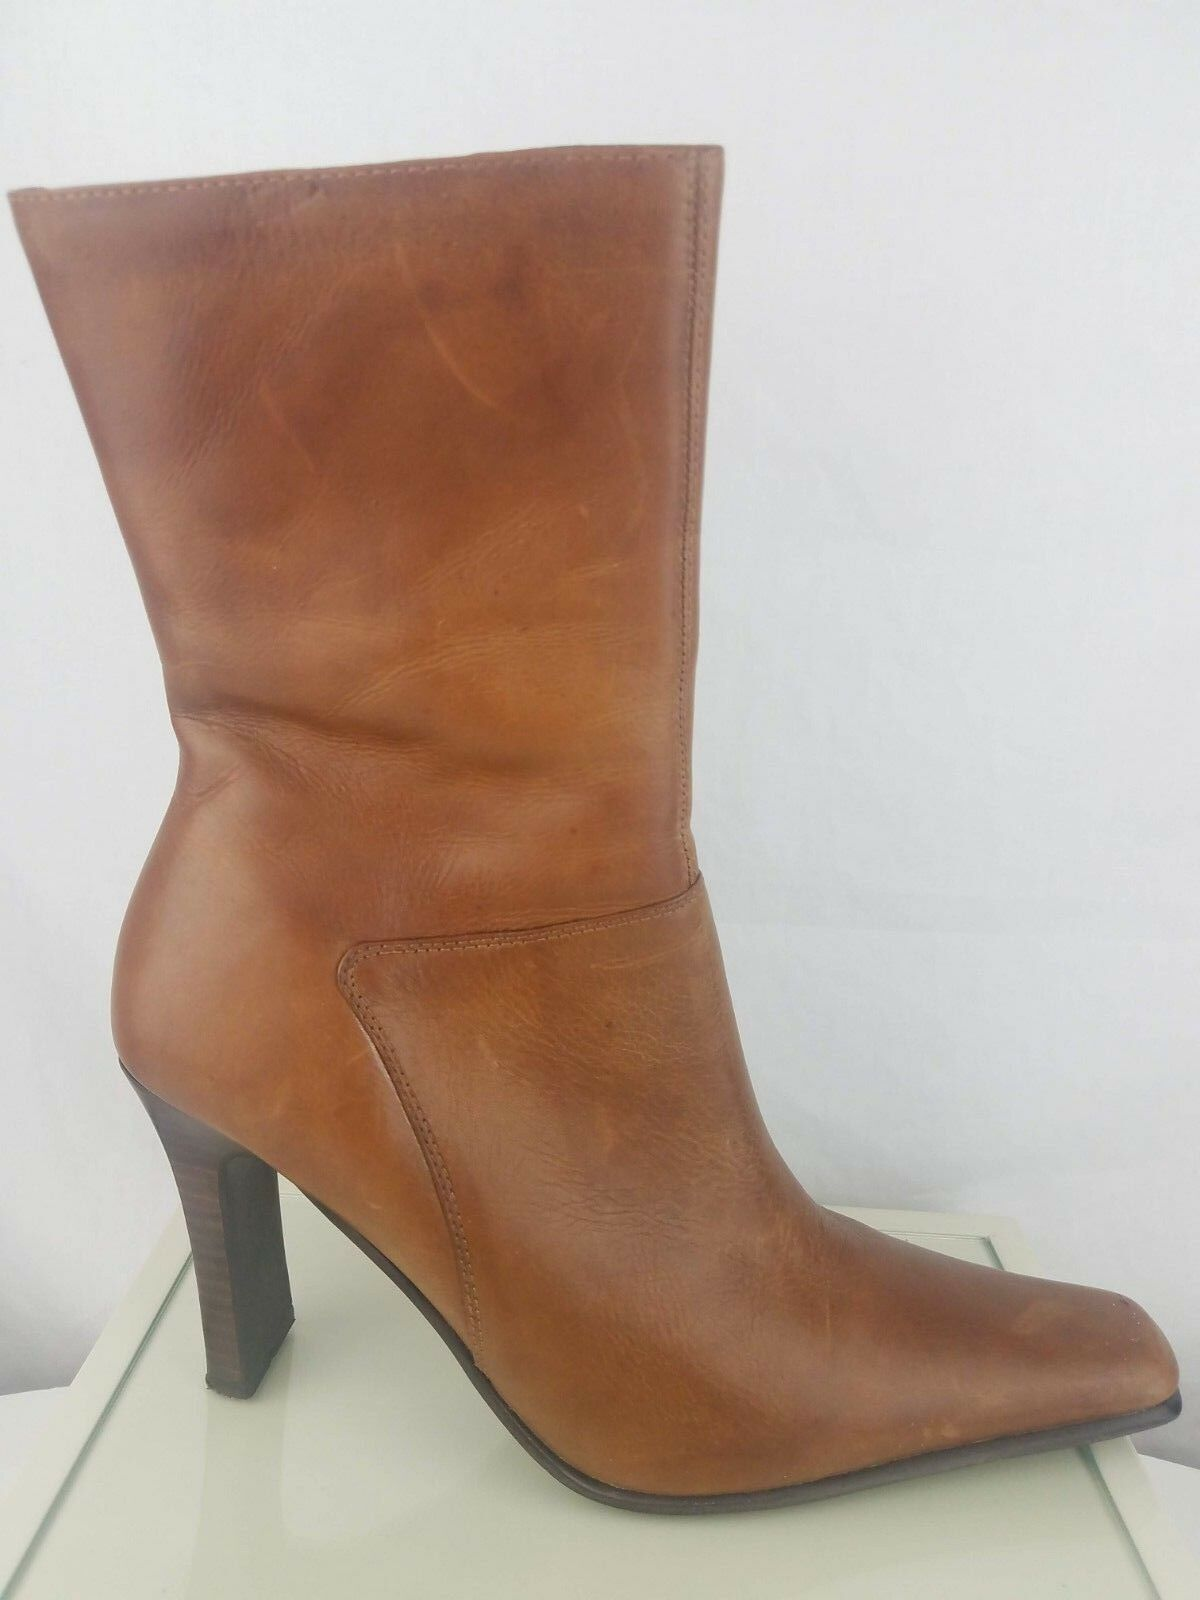 Steve Madden Joesie Brown Leather Zip High Heel Tall Ankle Boots Womens 9.5B